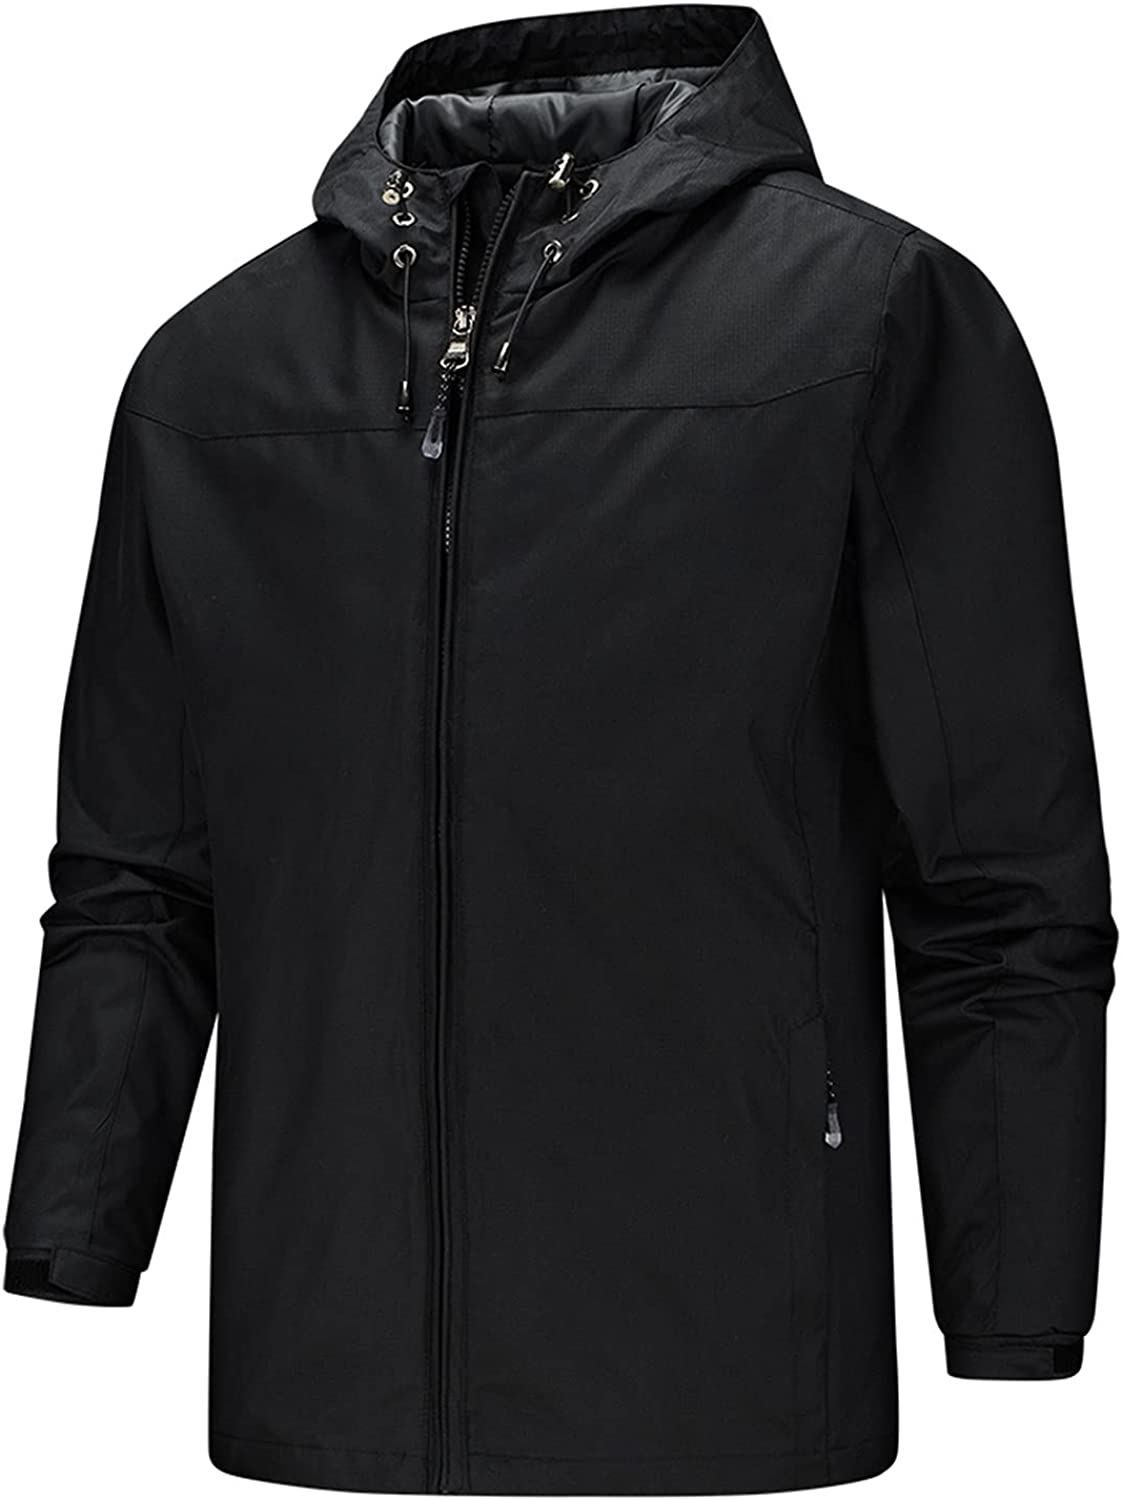 Men's Softshell Fleece Jacket Detachable Hooded Soft Shell Windproof Water Resistant Outerwear for Hiking Work Travel